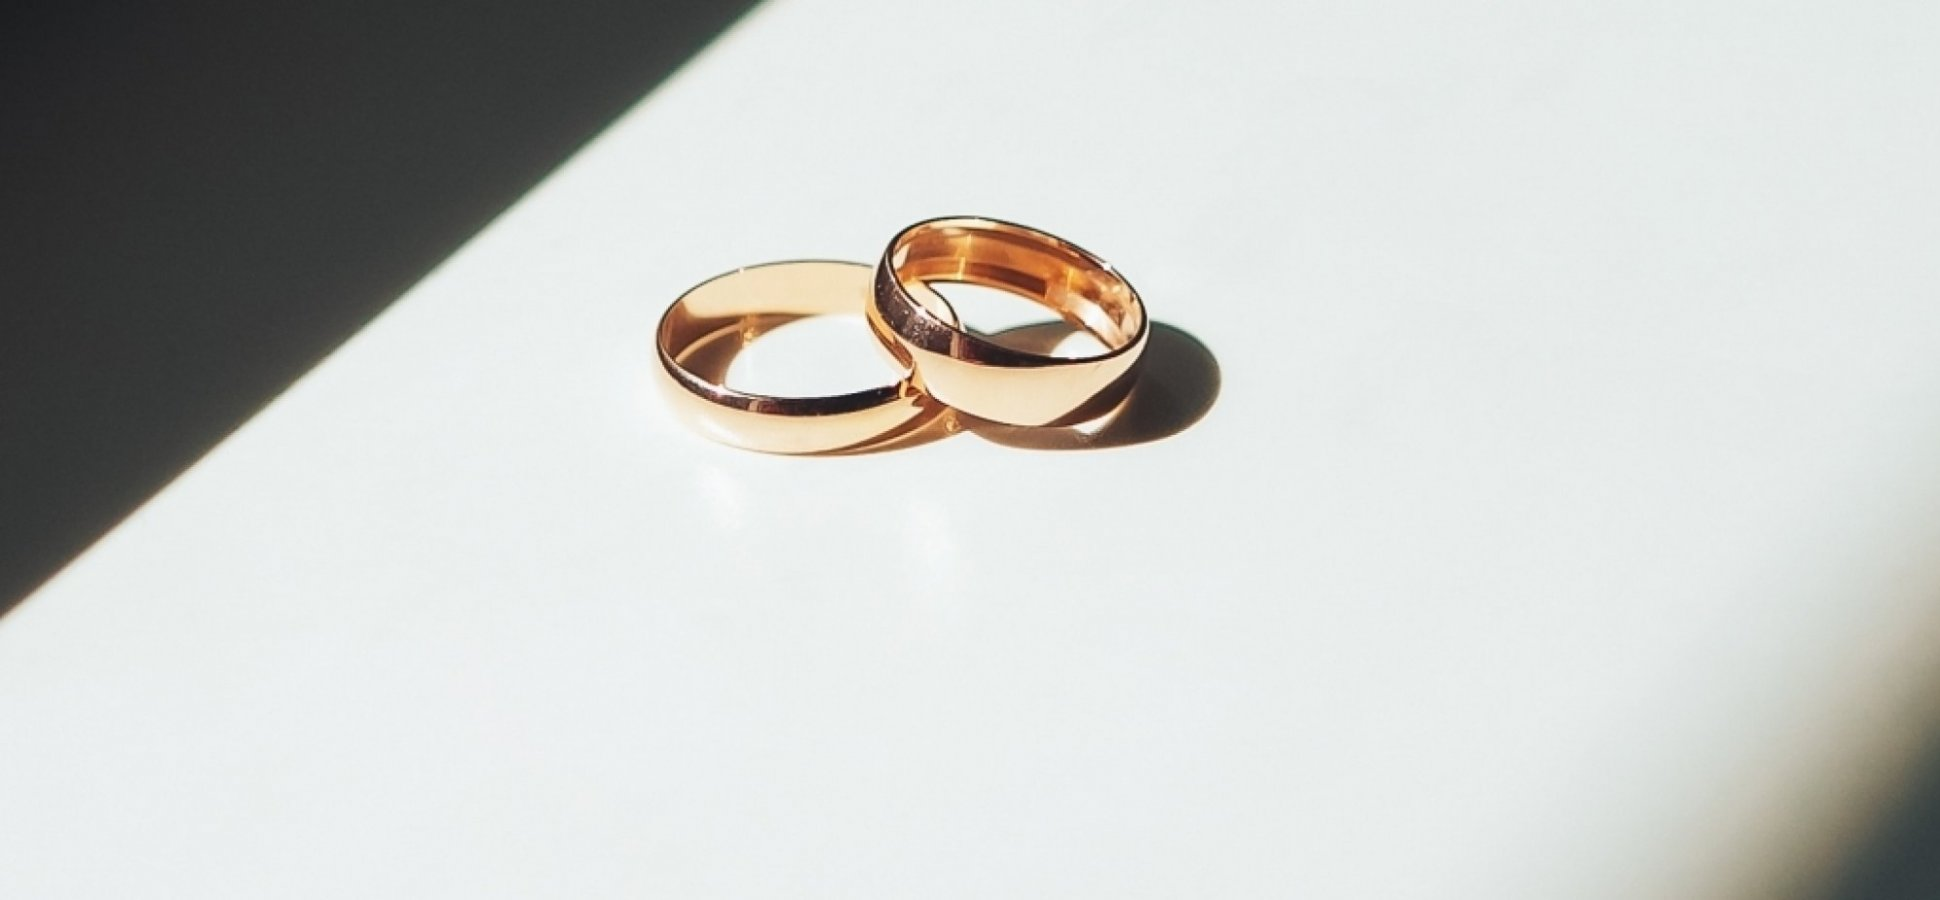 Want a Happy Marriage? Science Says a Couple Should Do These 7 Things for Each Other Often | Inc.com